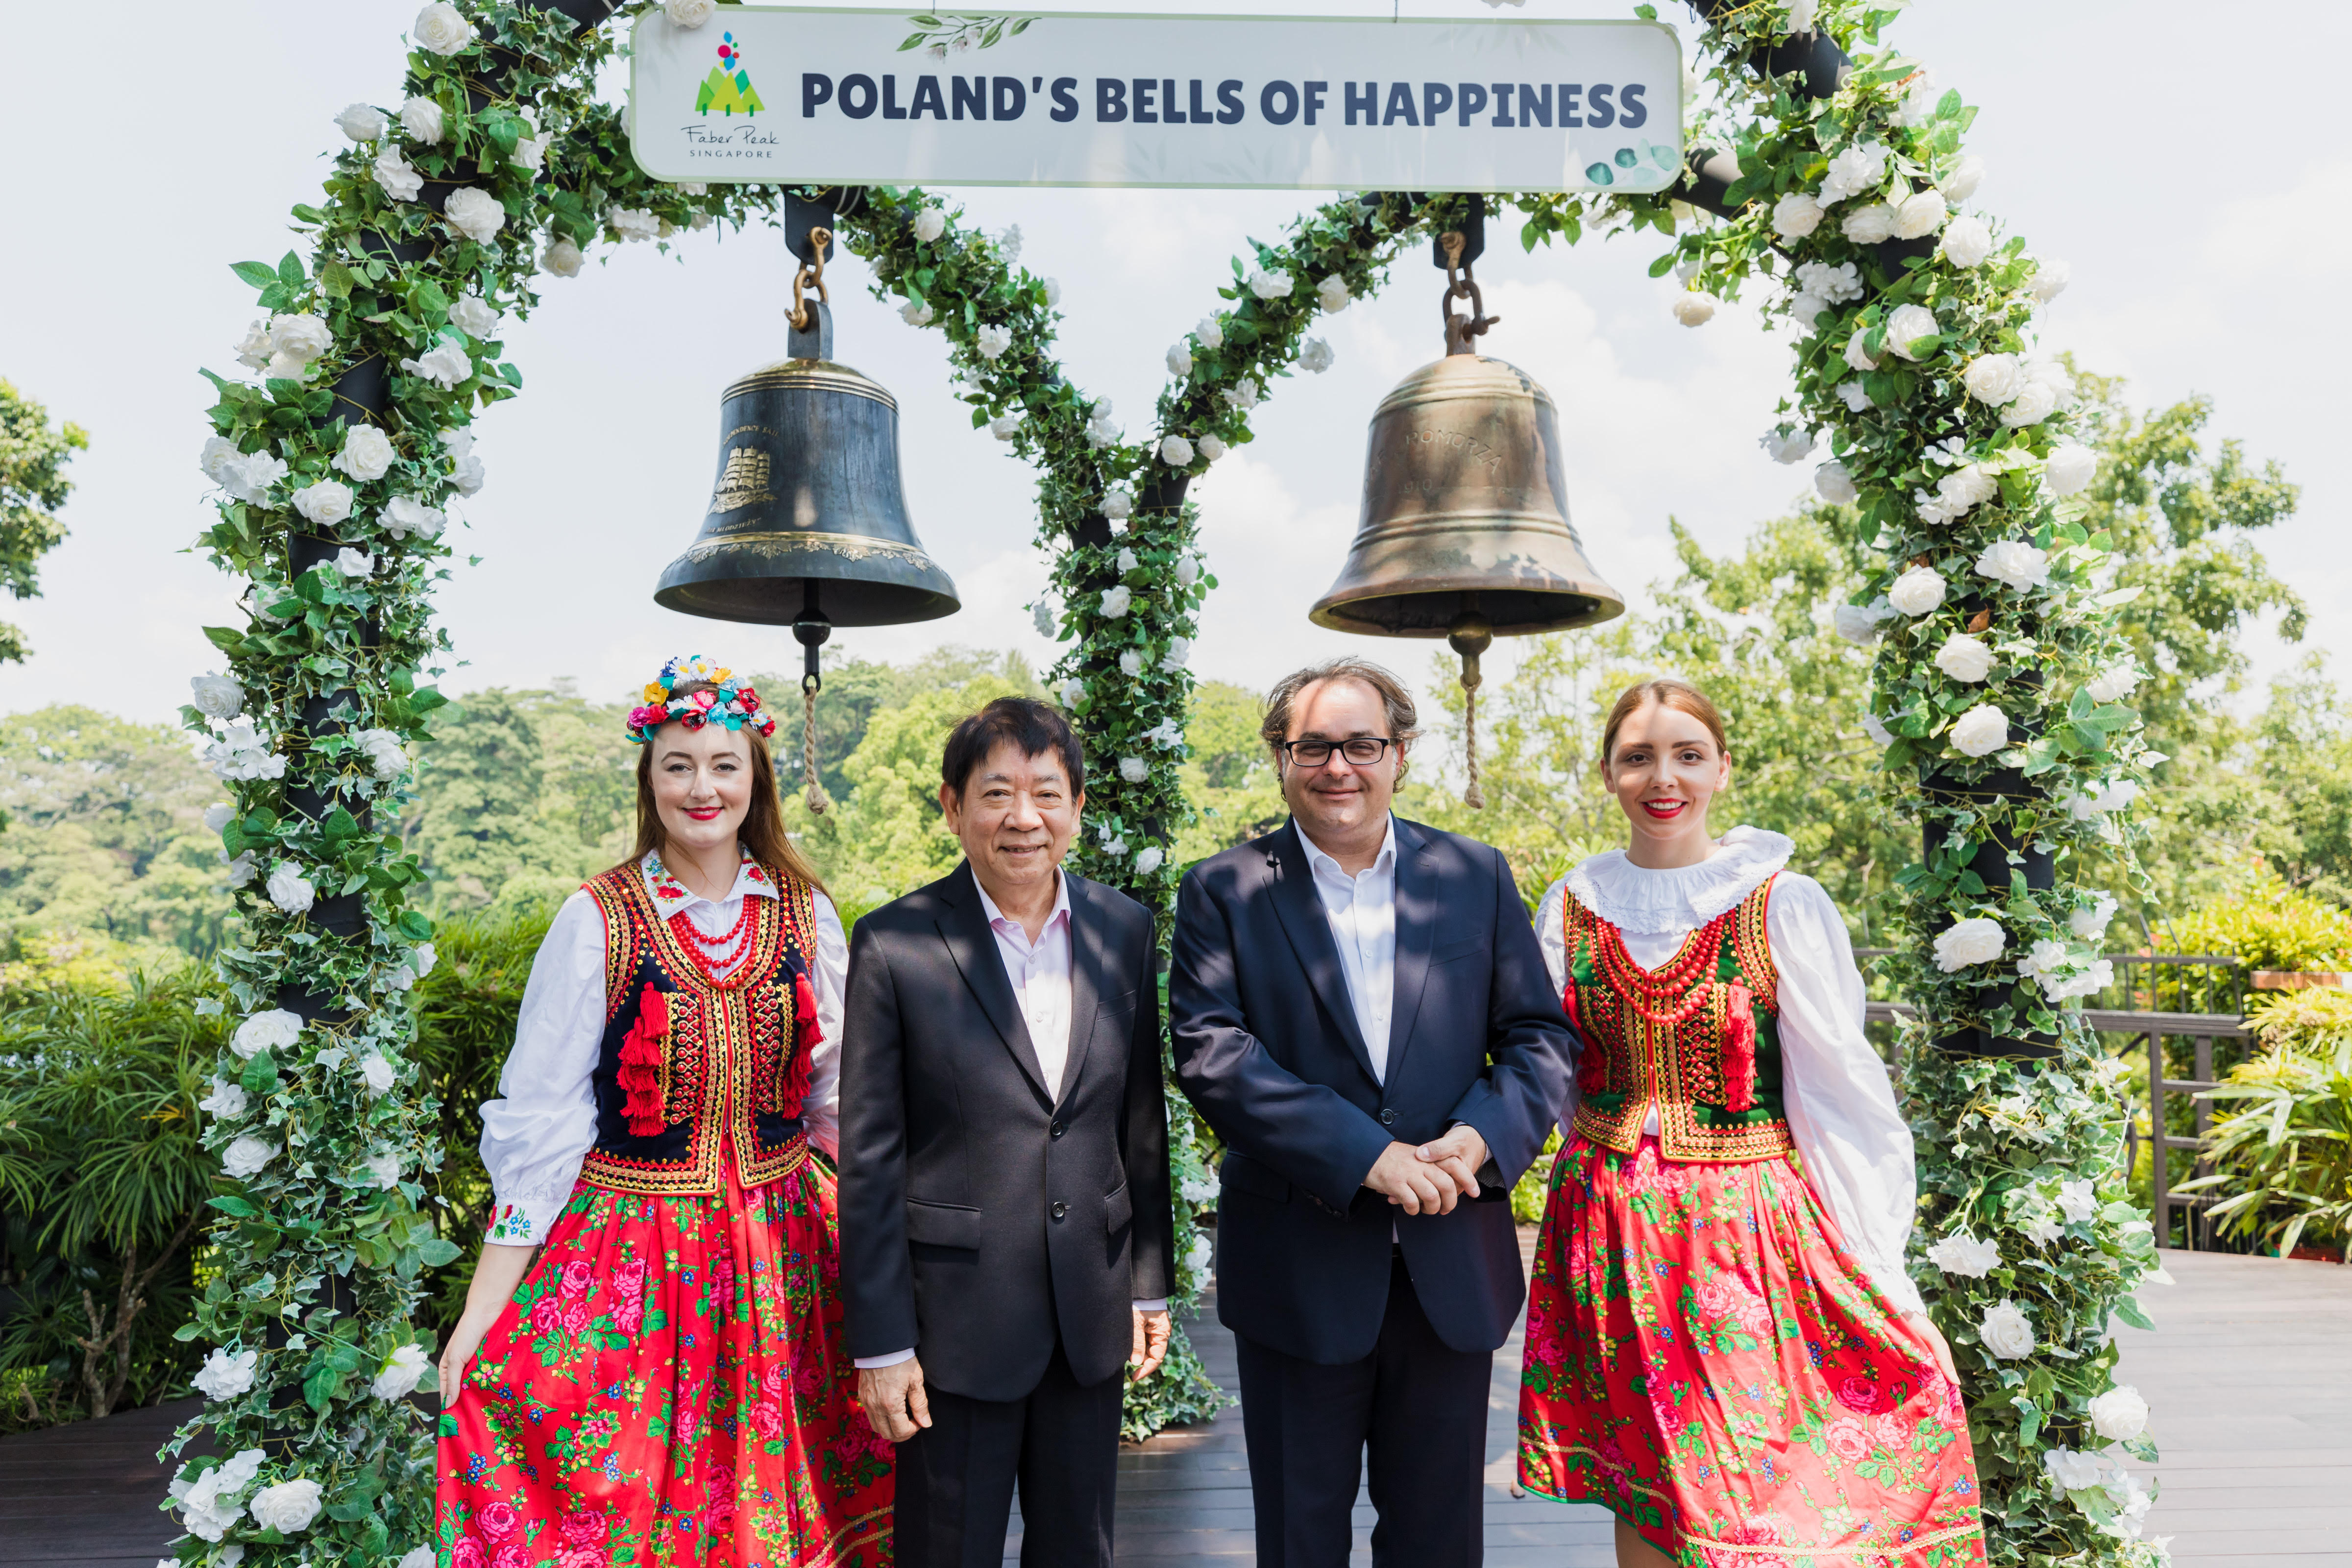 The newly renamed Poland's Bells of Happiness were unveiled in the presence of Coordinating Minister for Infrastructure, Minister for Transport of Singapore Khaw Boon Wan and Minister of Maritime Economy and Inland Navigation of Poland, Marek Gróbarczyk. Photo courtesy: One Faber Group